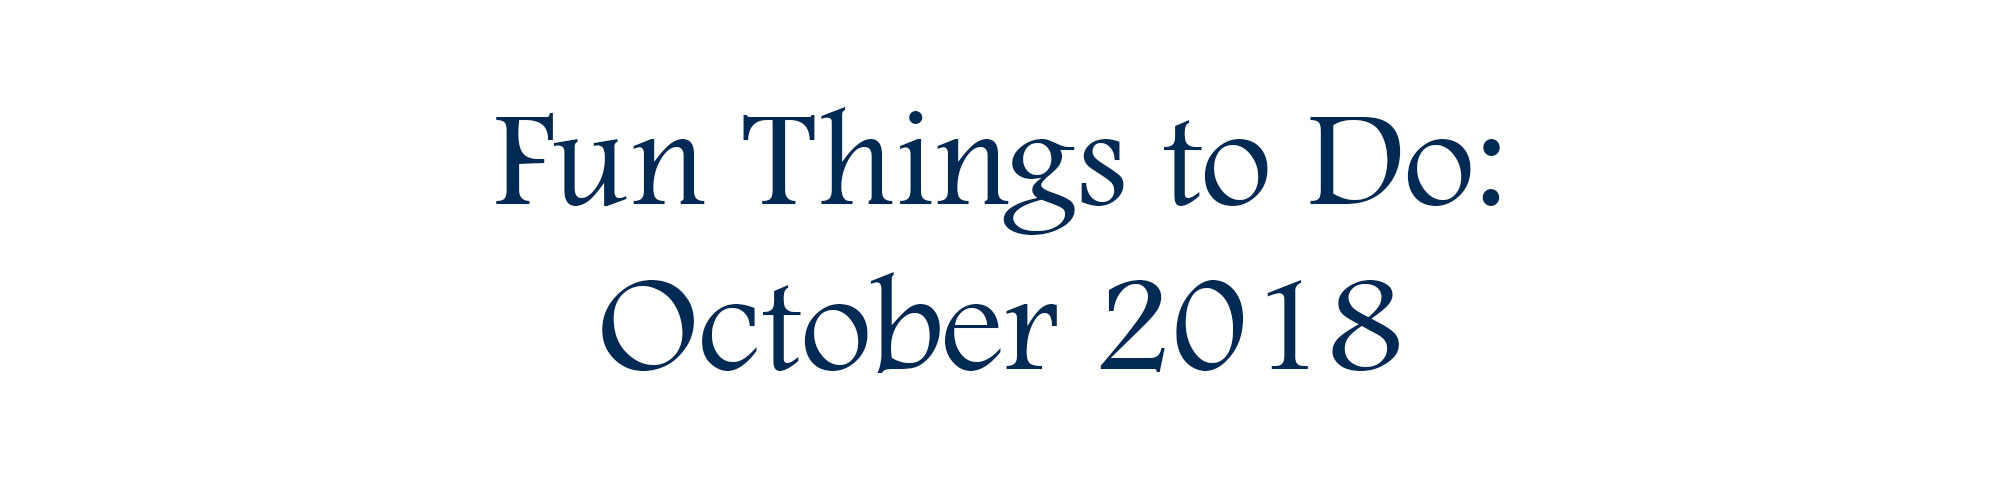 Fun Things to Do: October 2018